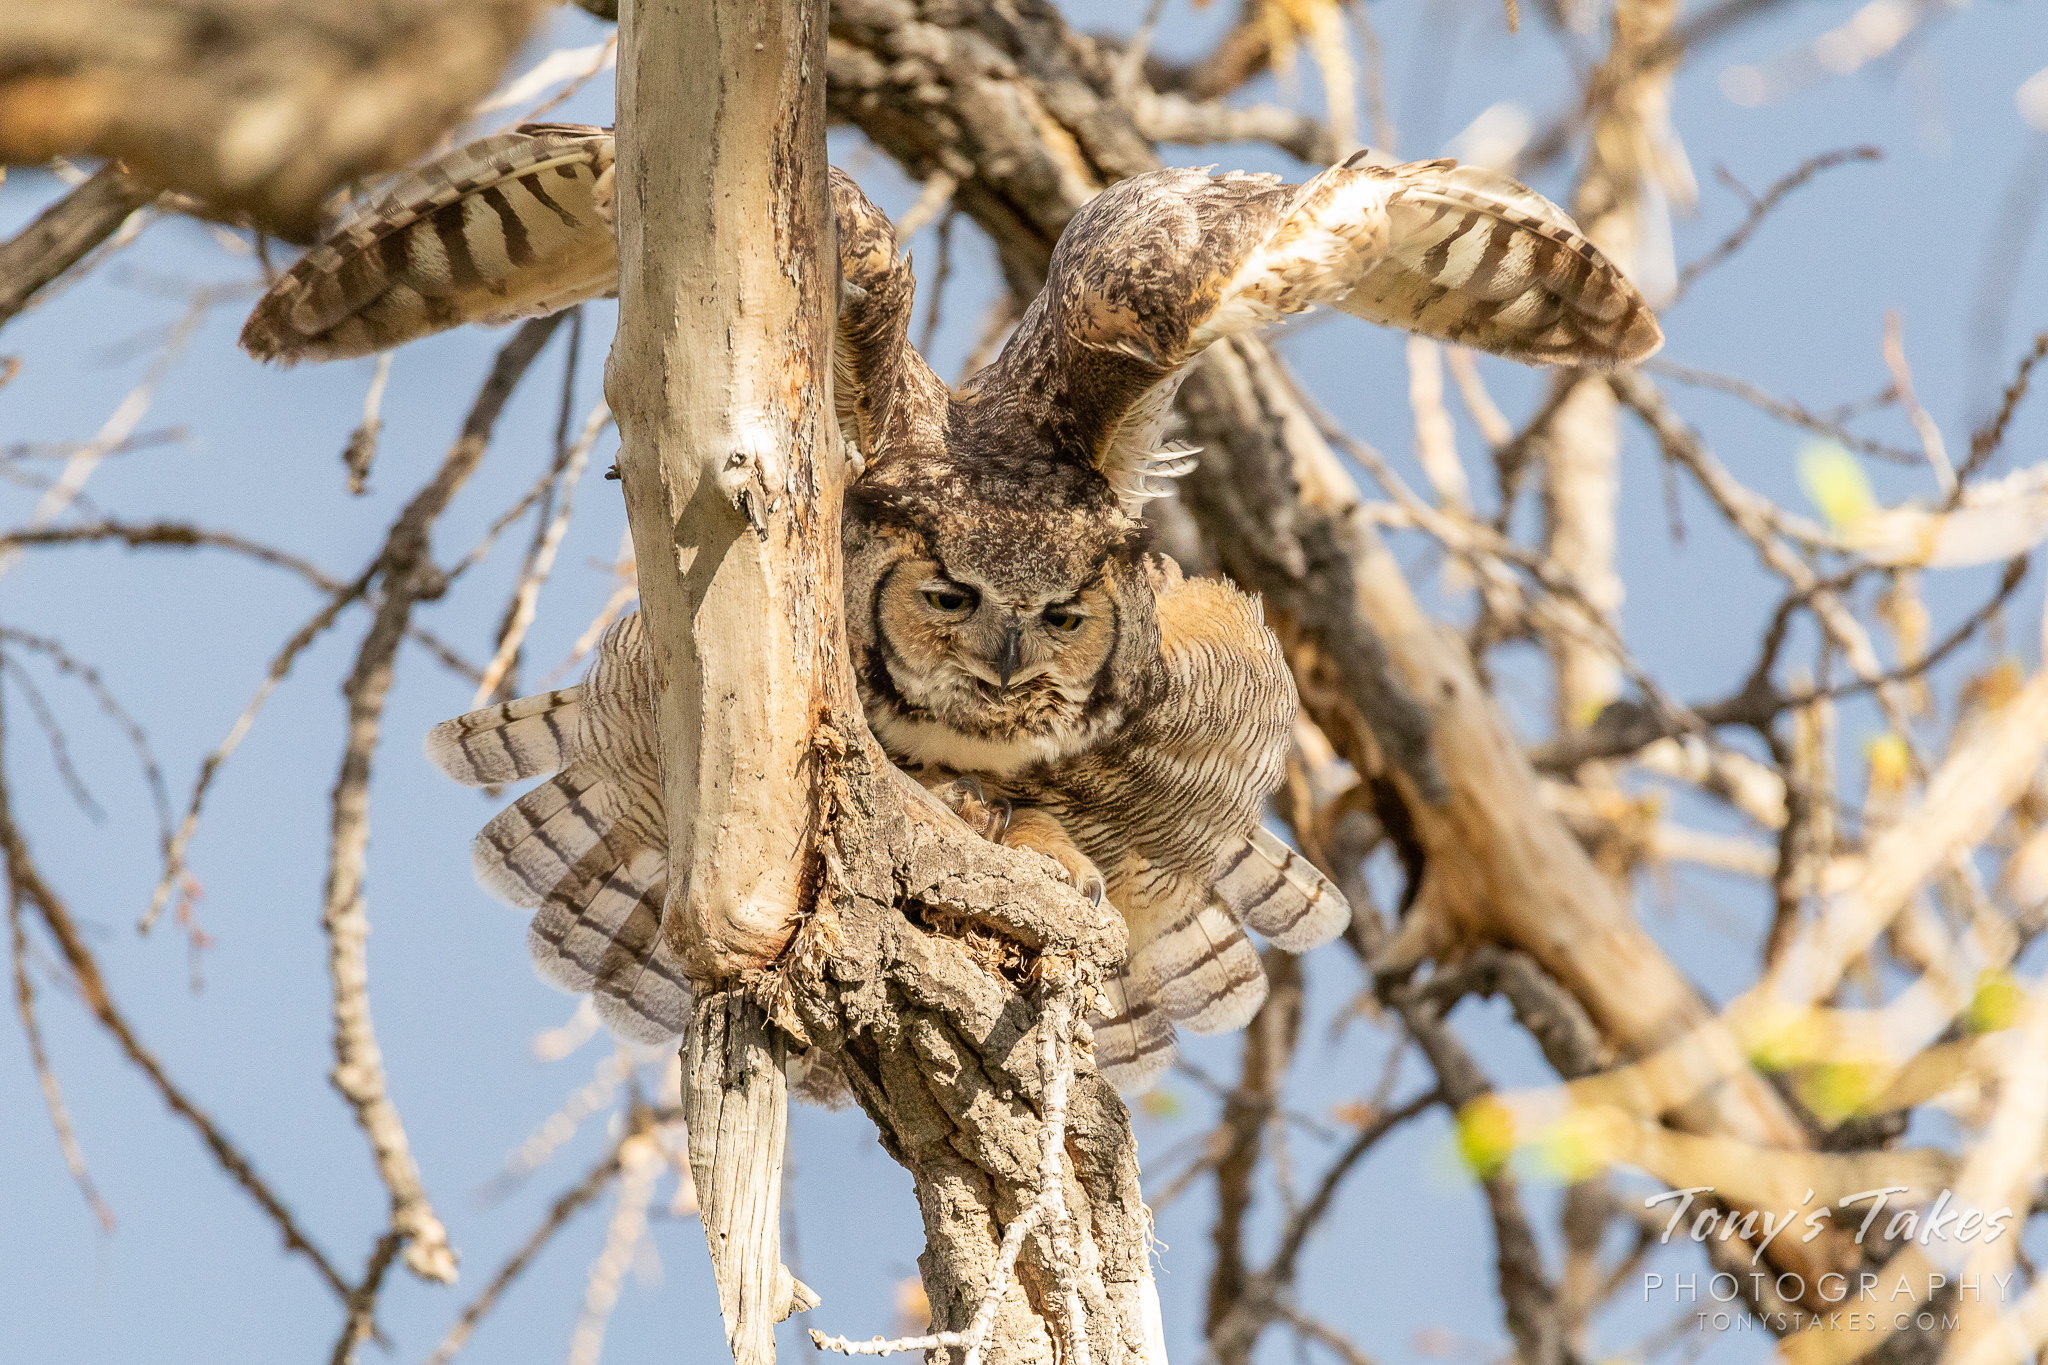 A female great horned owl stretches her wings over head in Thornton, Colorado. (© Tony's Takes)